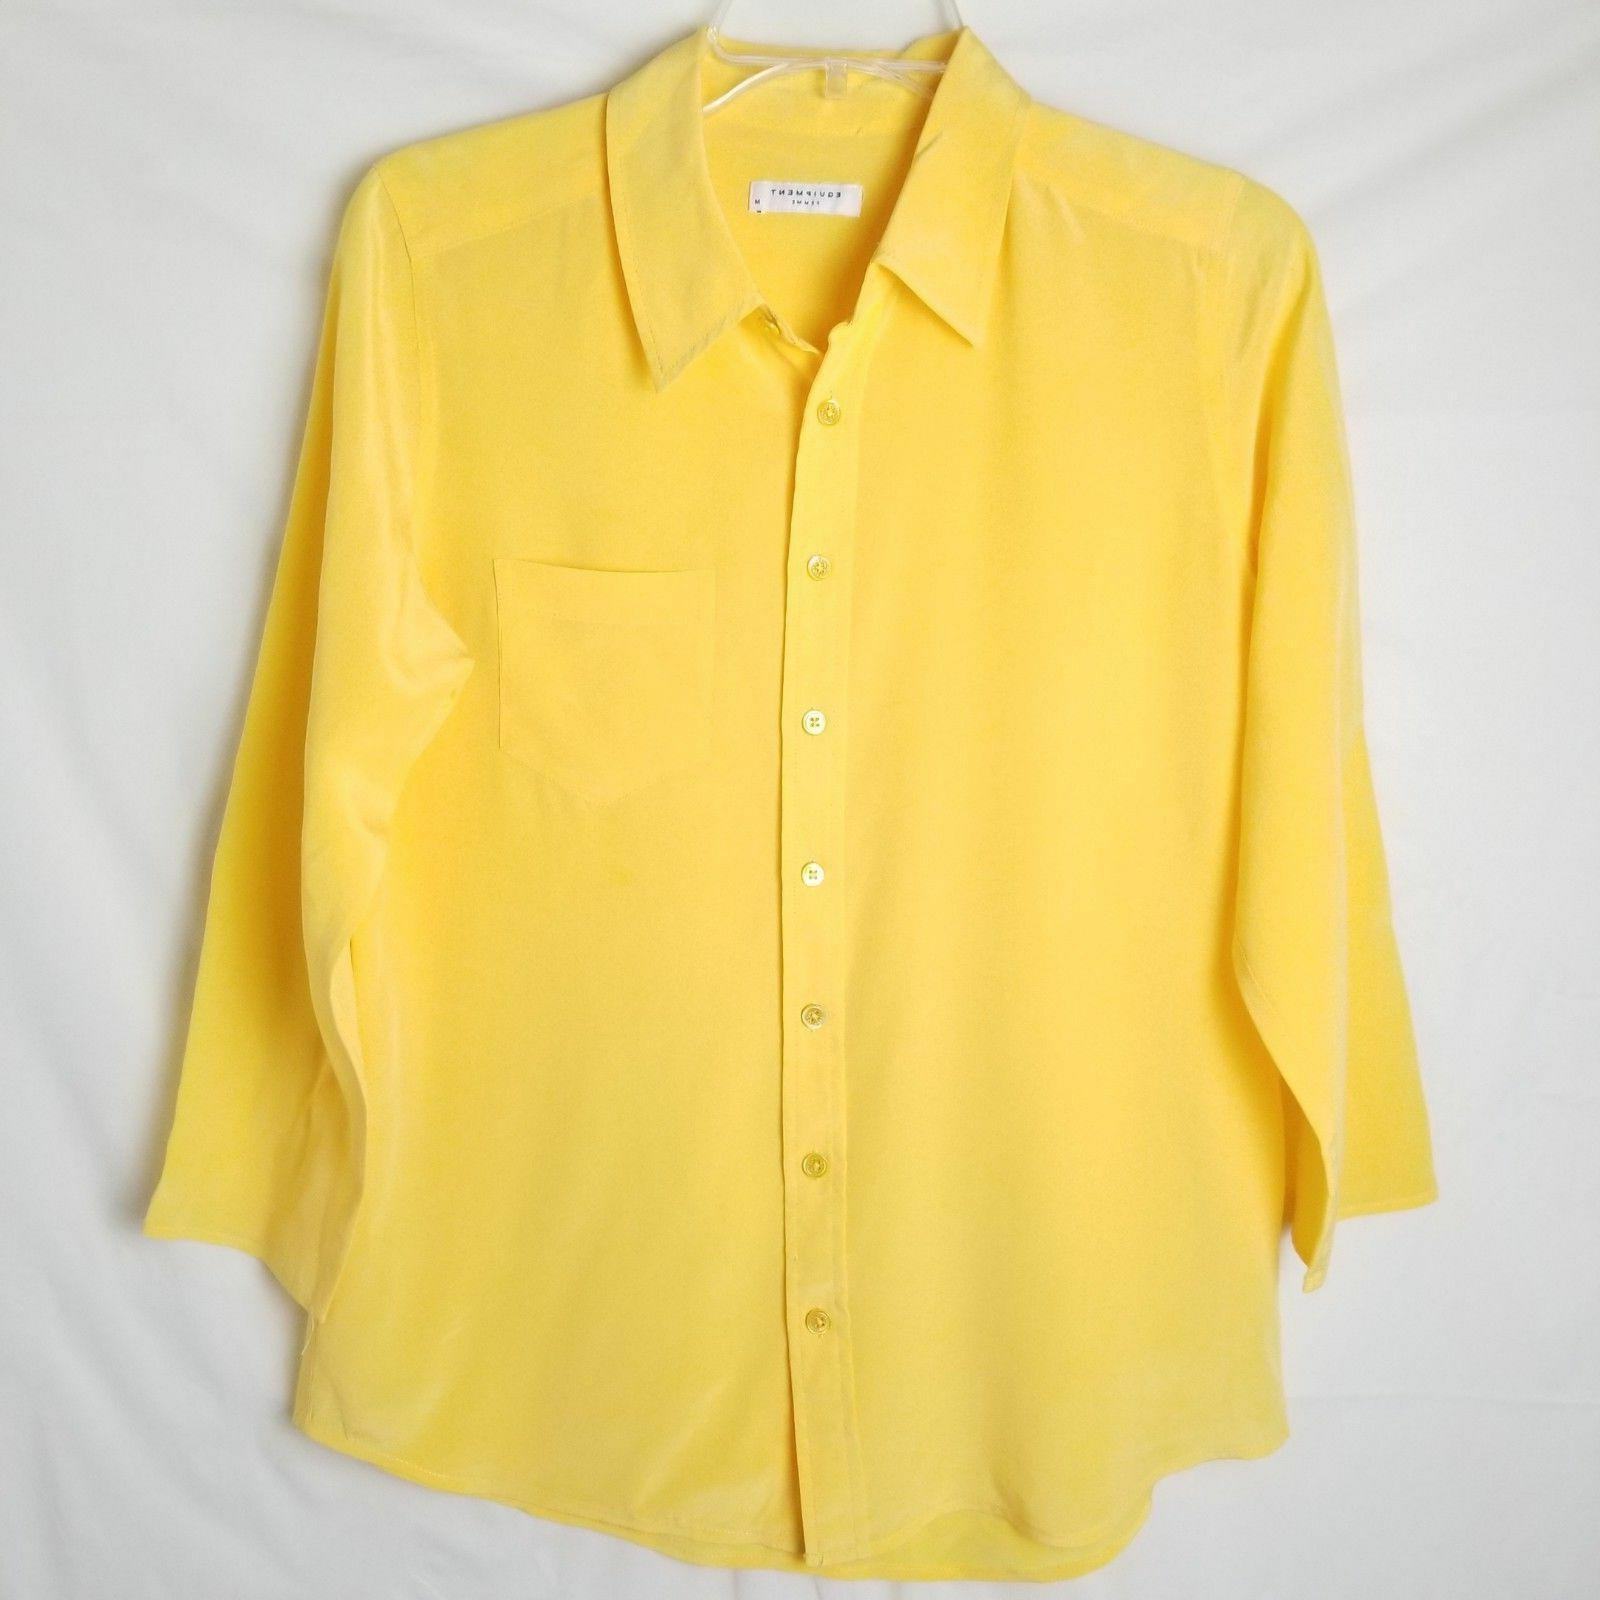 Equipment Femme Yellow 100% Silk Blouse Top Shirt